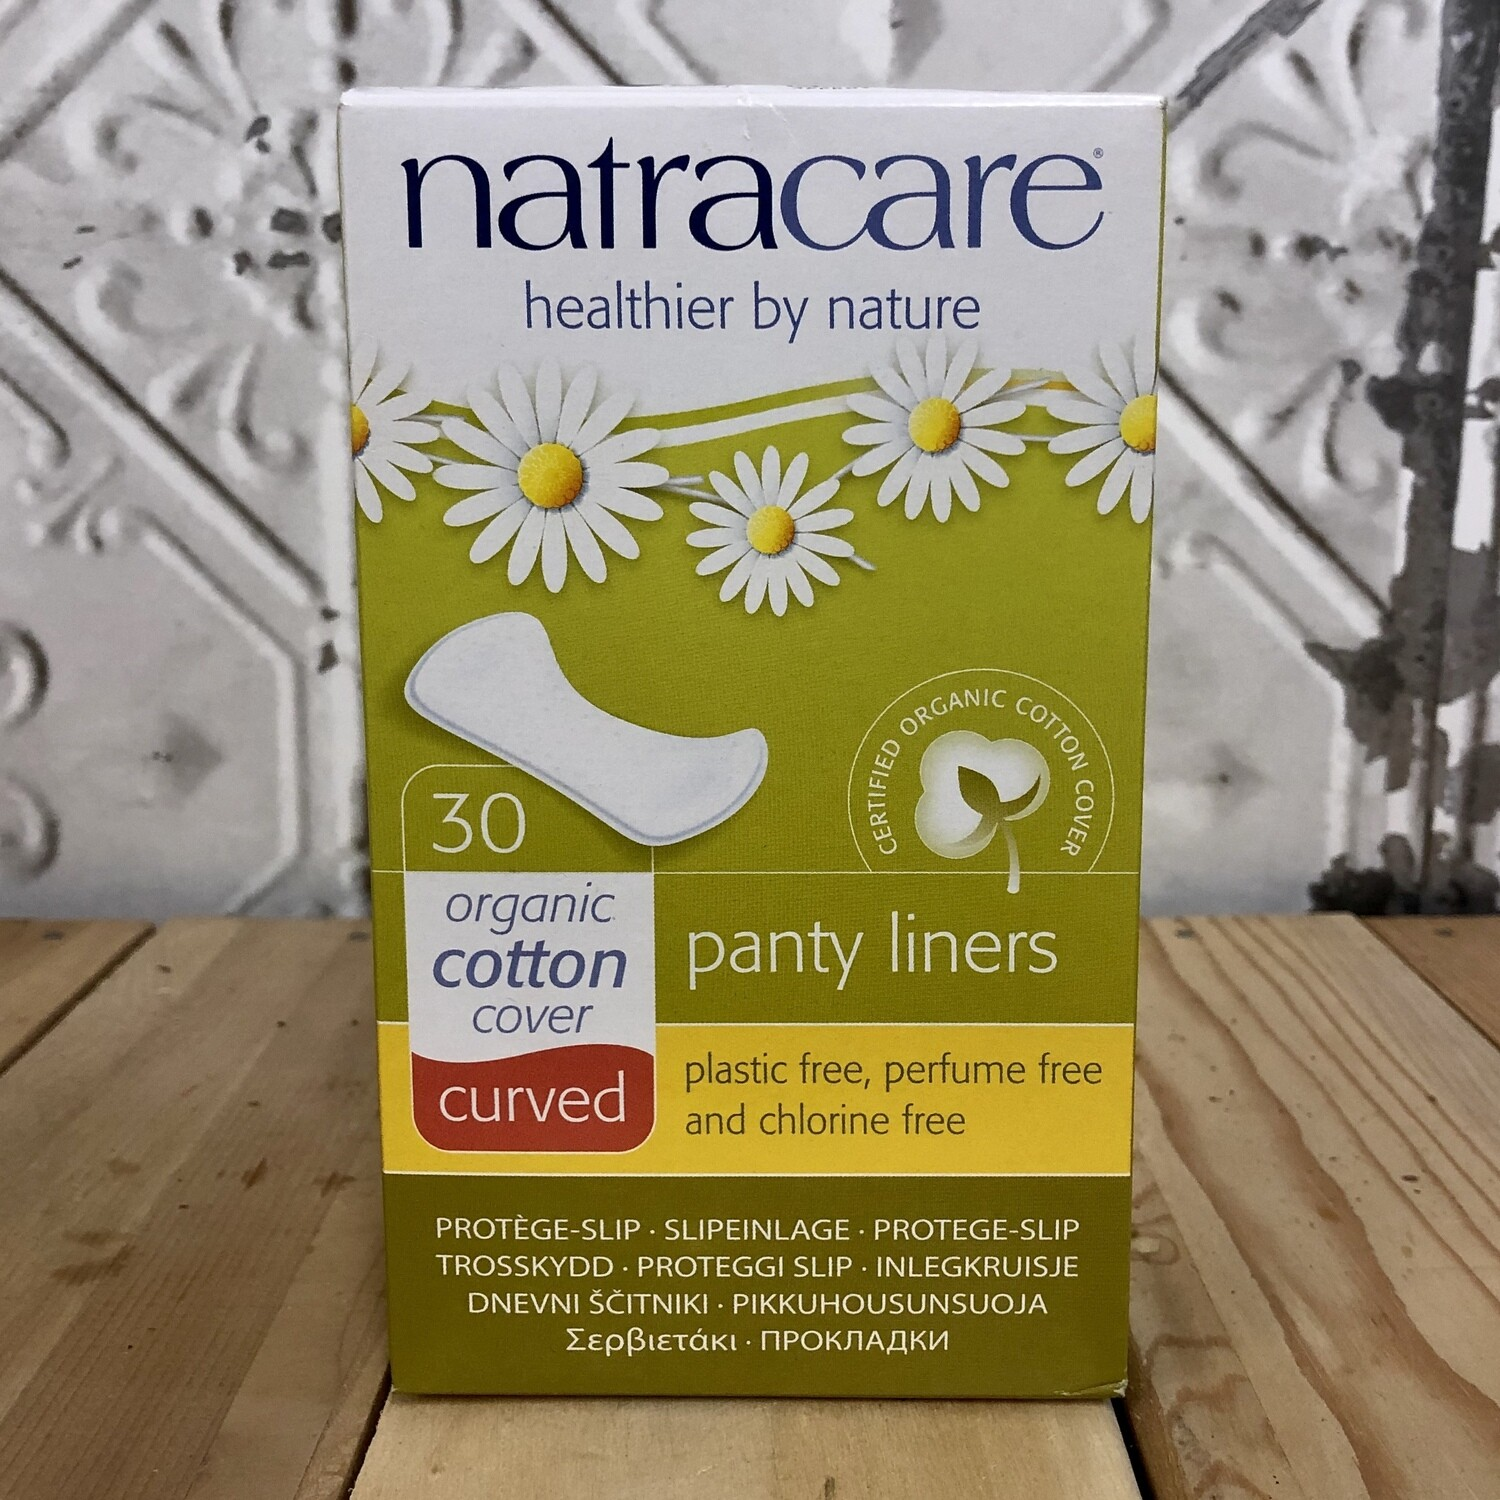 NATRACARE Panty Liners 30ct Curved